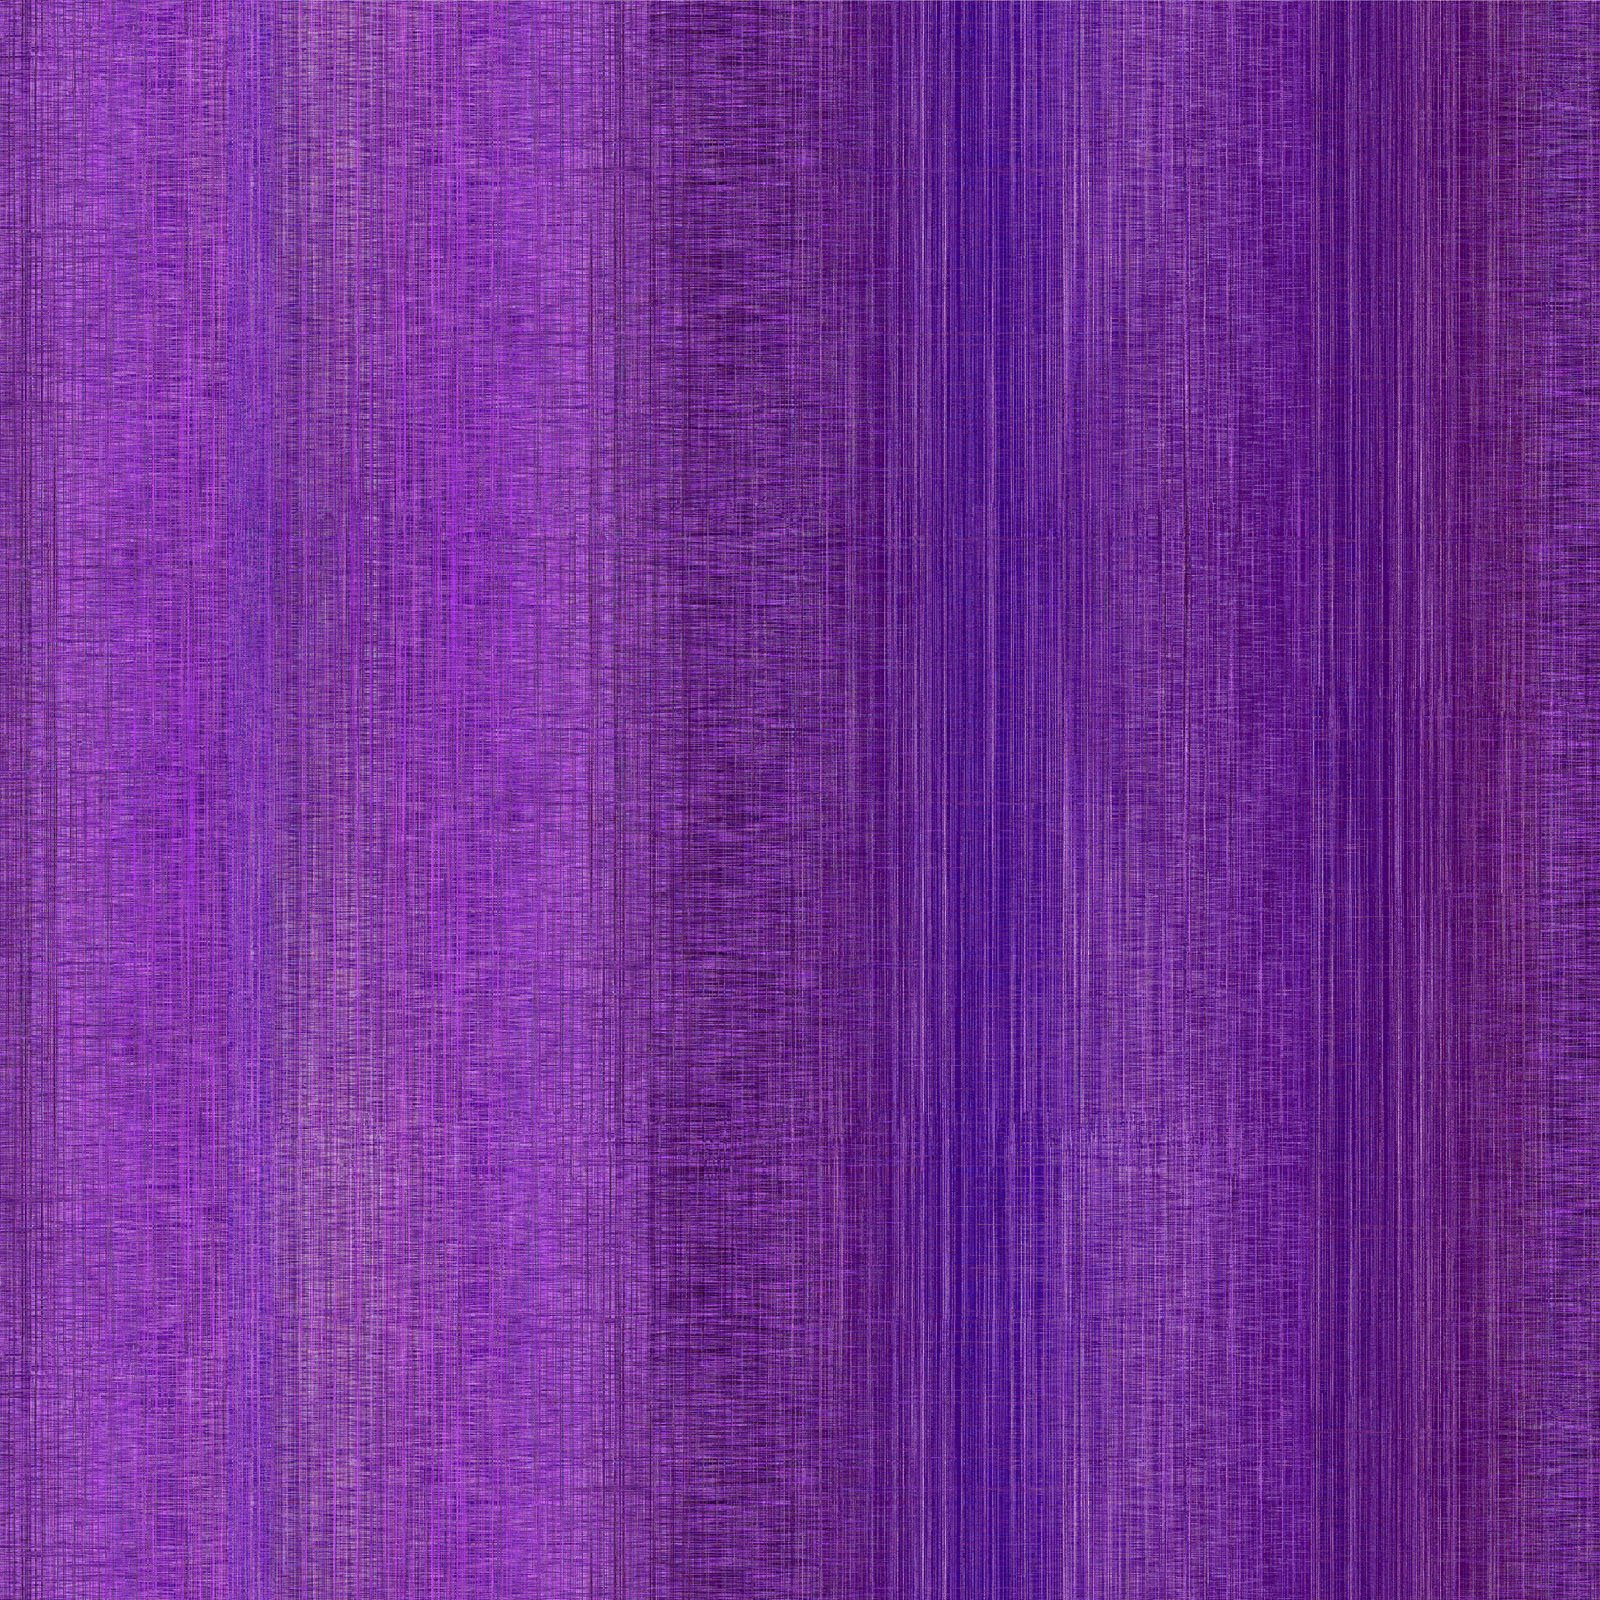 OMBR-4498 F - OMBRE 108 DIGITAL BY P&B BOUTIQUE VIOLET/PURPLE - ARRIVING IN AUGUST 2021